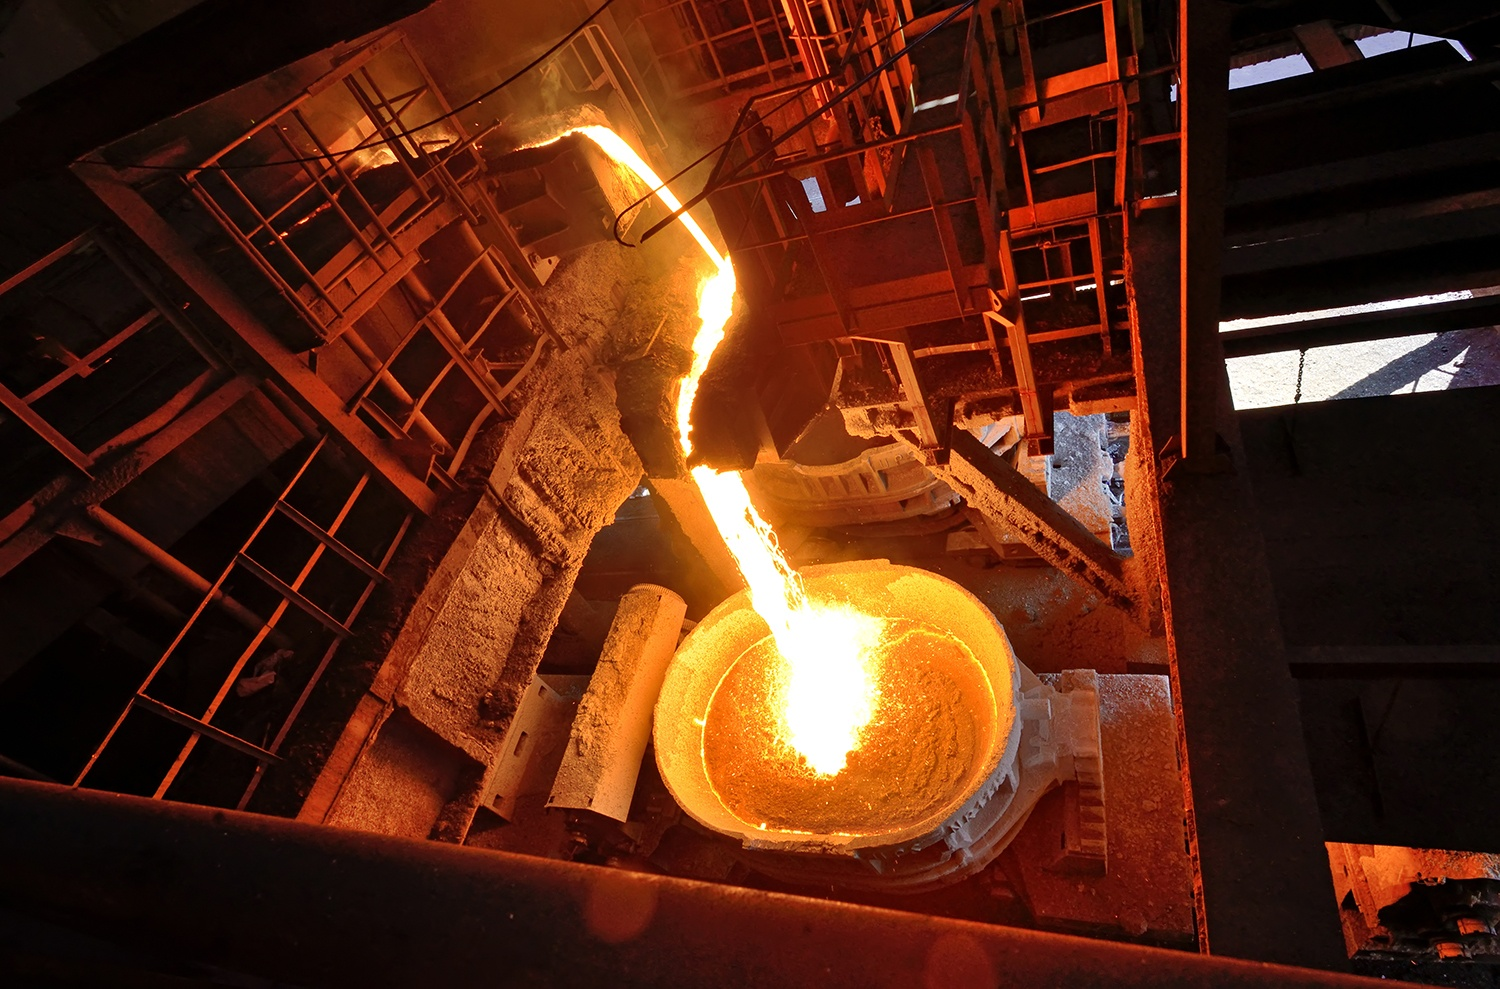 custom-basket-faqs-what-is-the-melting-point-of-inconel-625